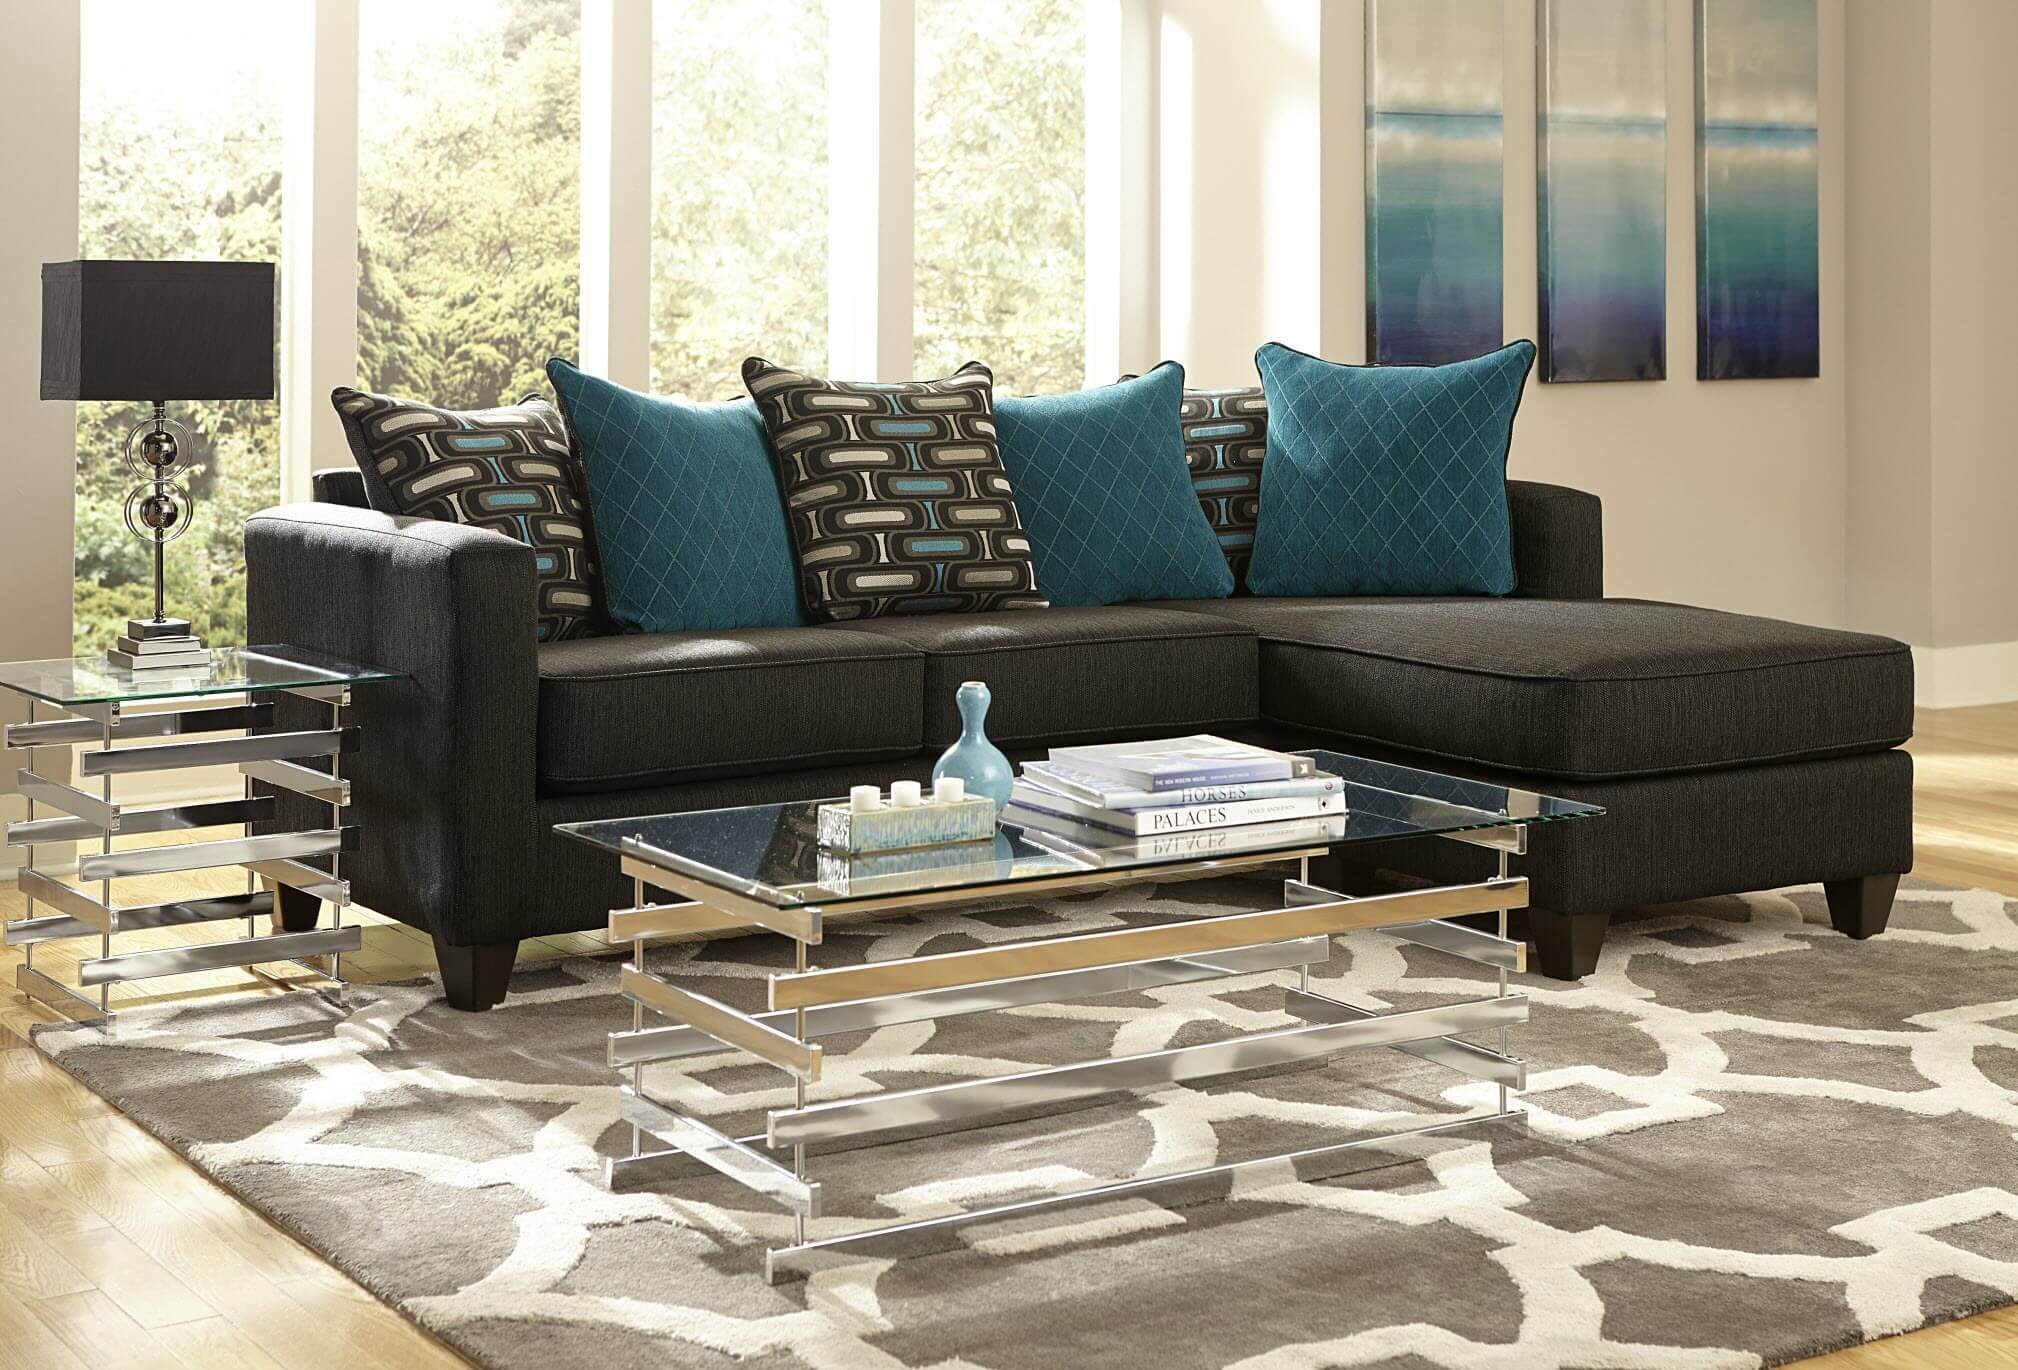 How To Buy A Sectional Sofa Urban Furniture Outlet